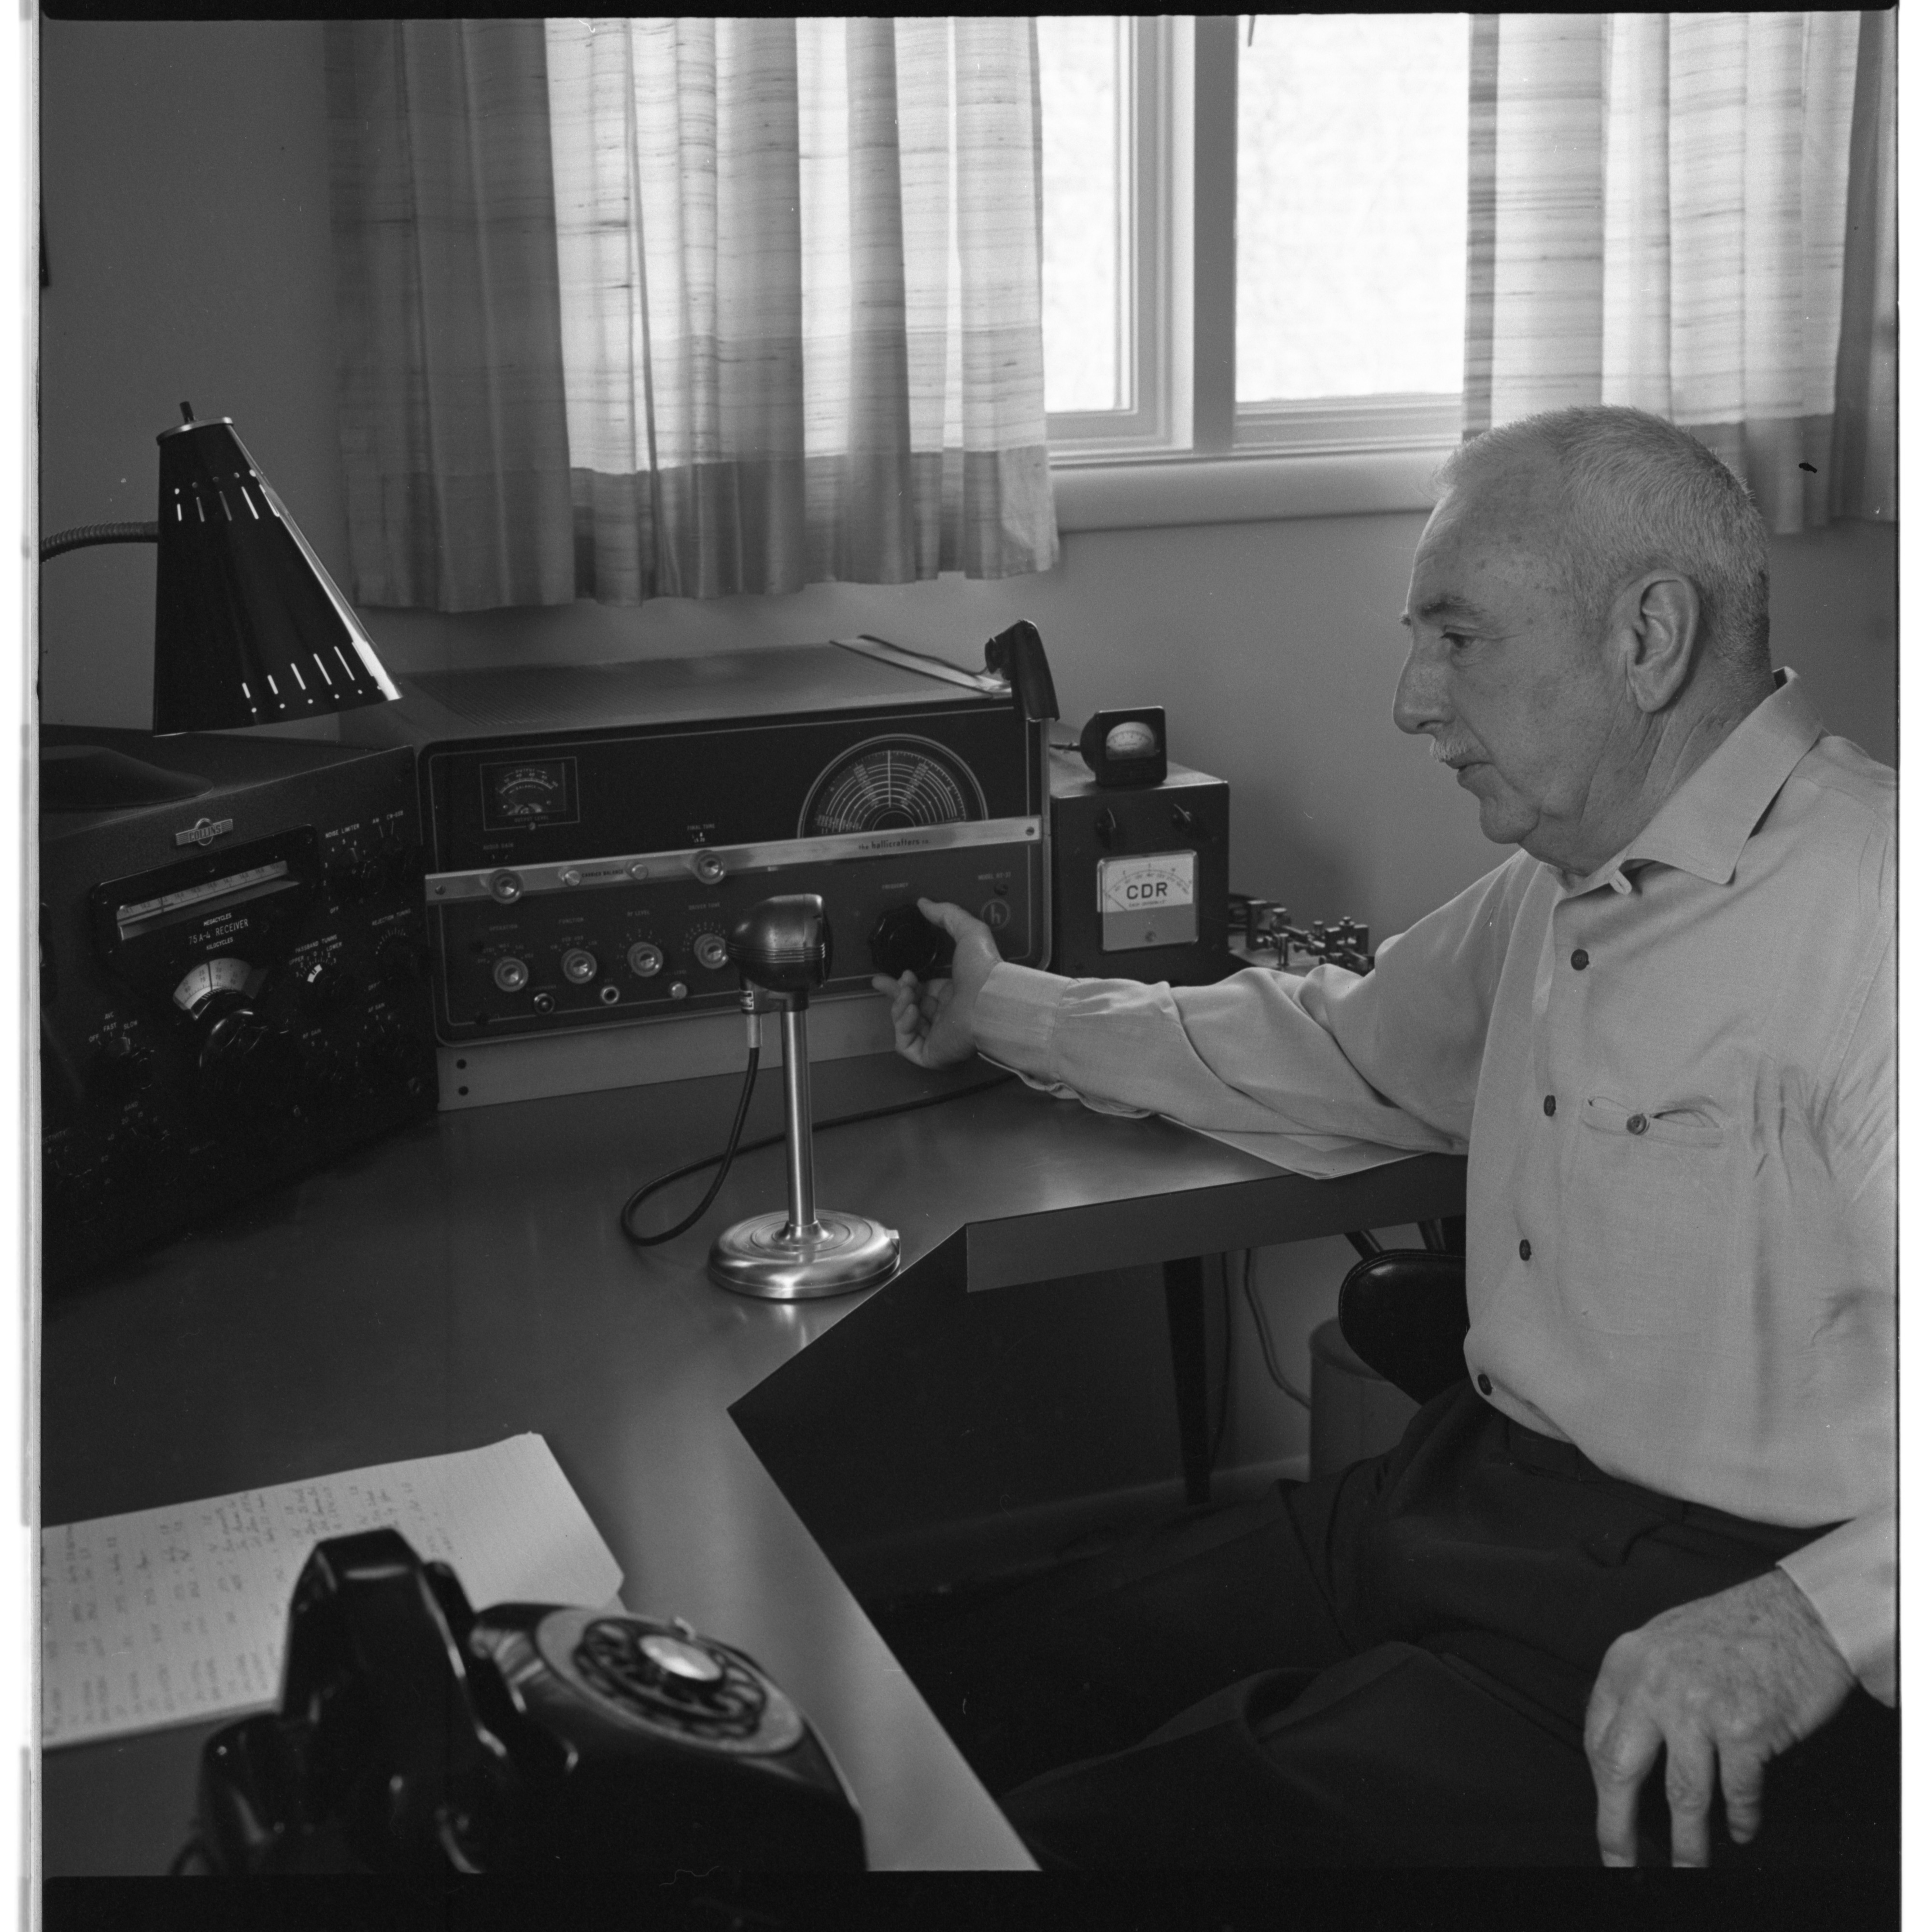 Robert V. Austin Tunes In On The Eye Bank Network With His Ham Radio, March 1964 image